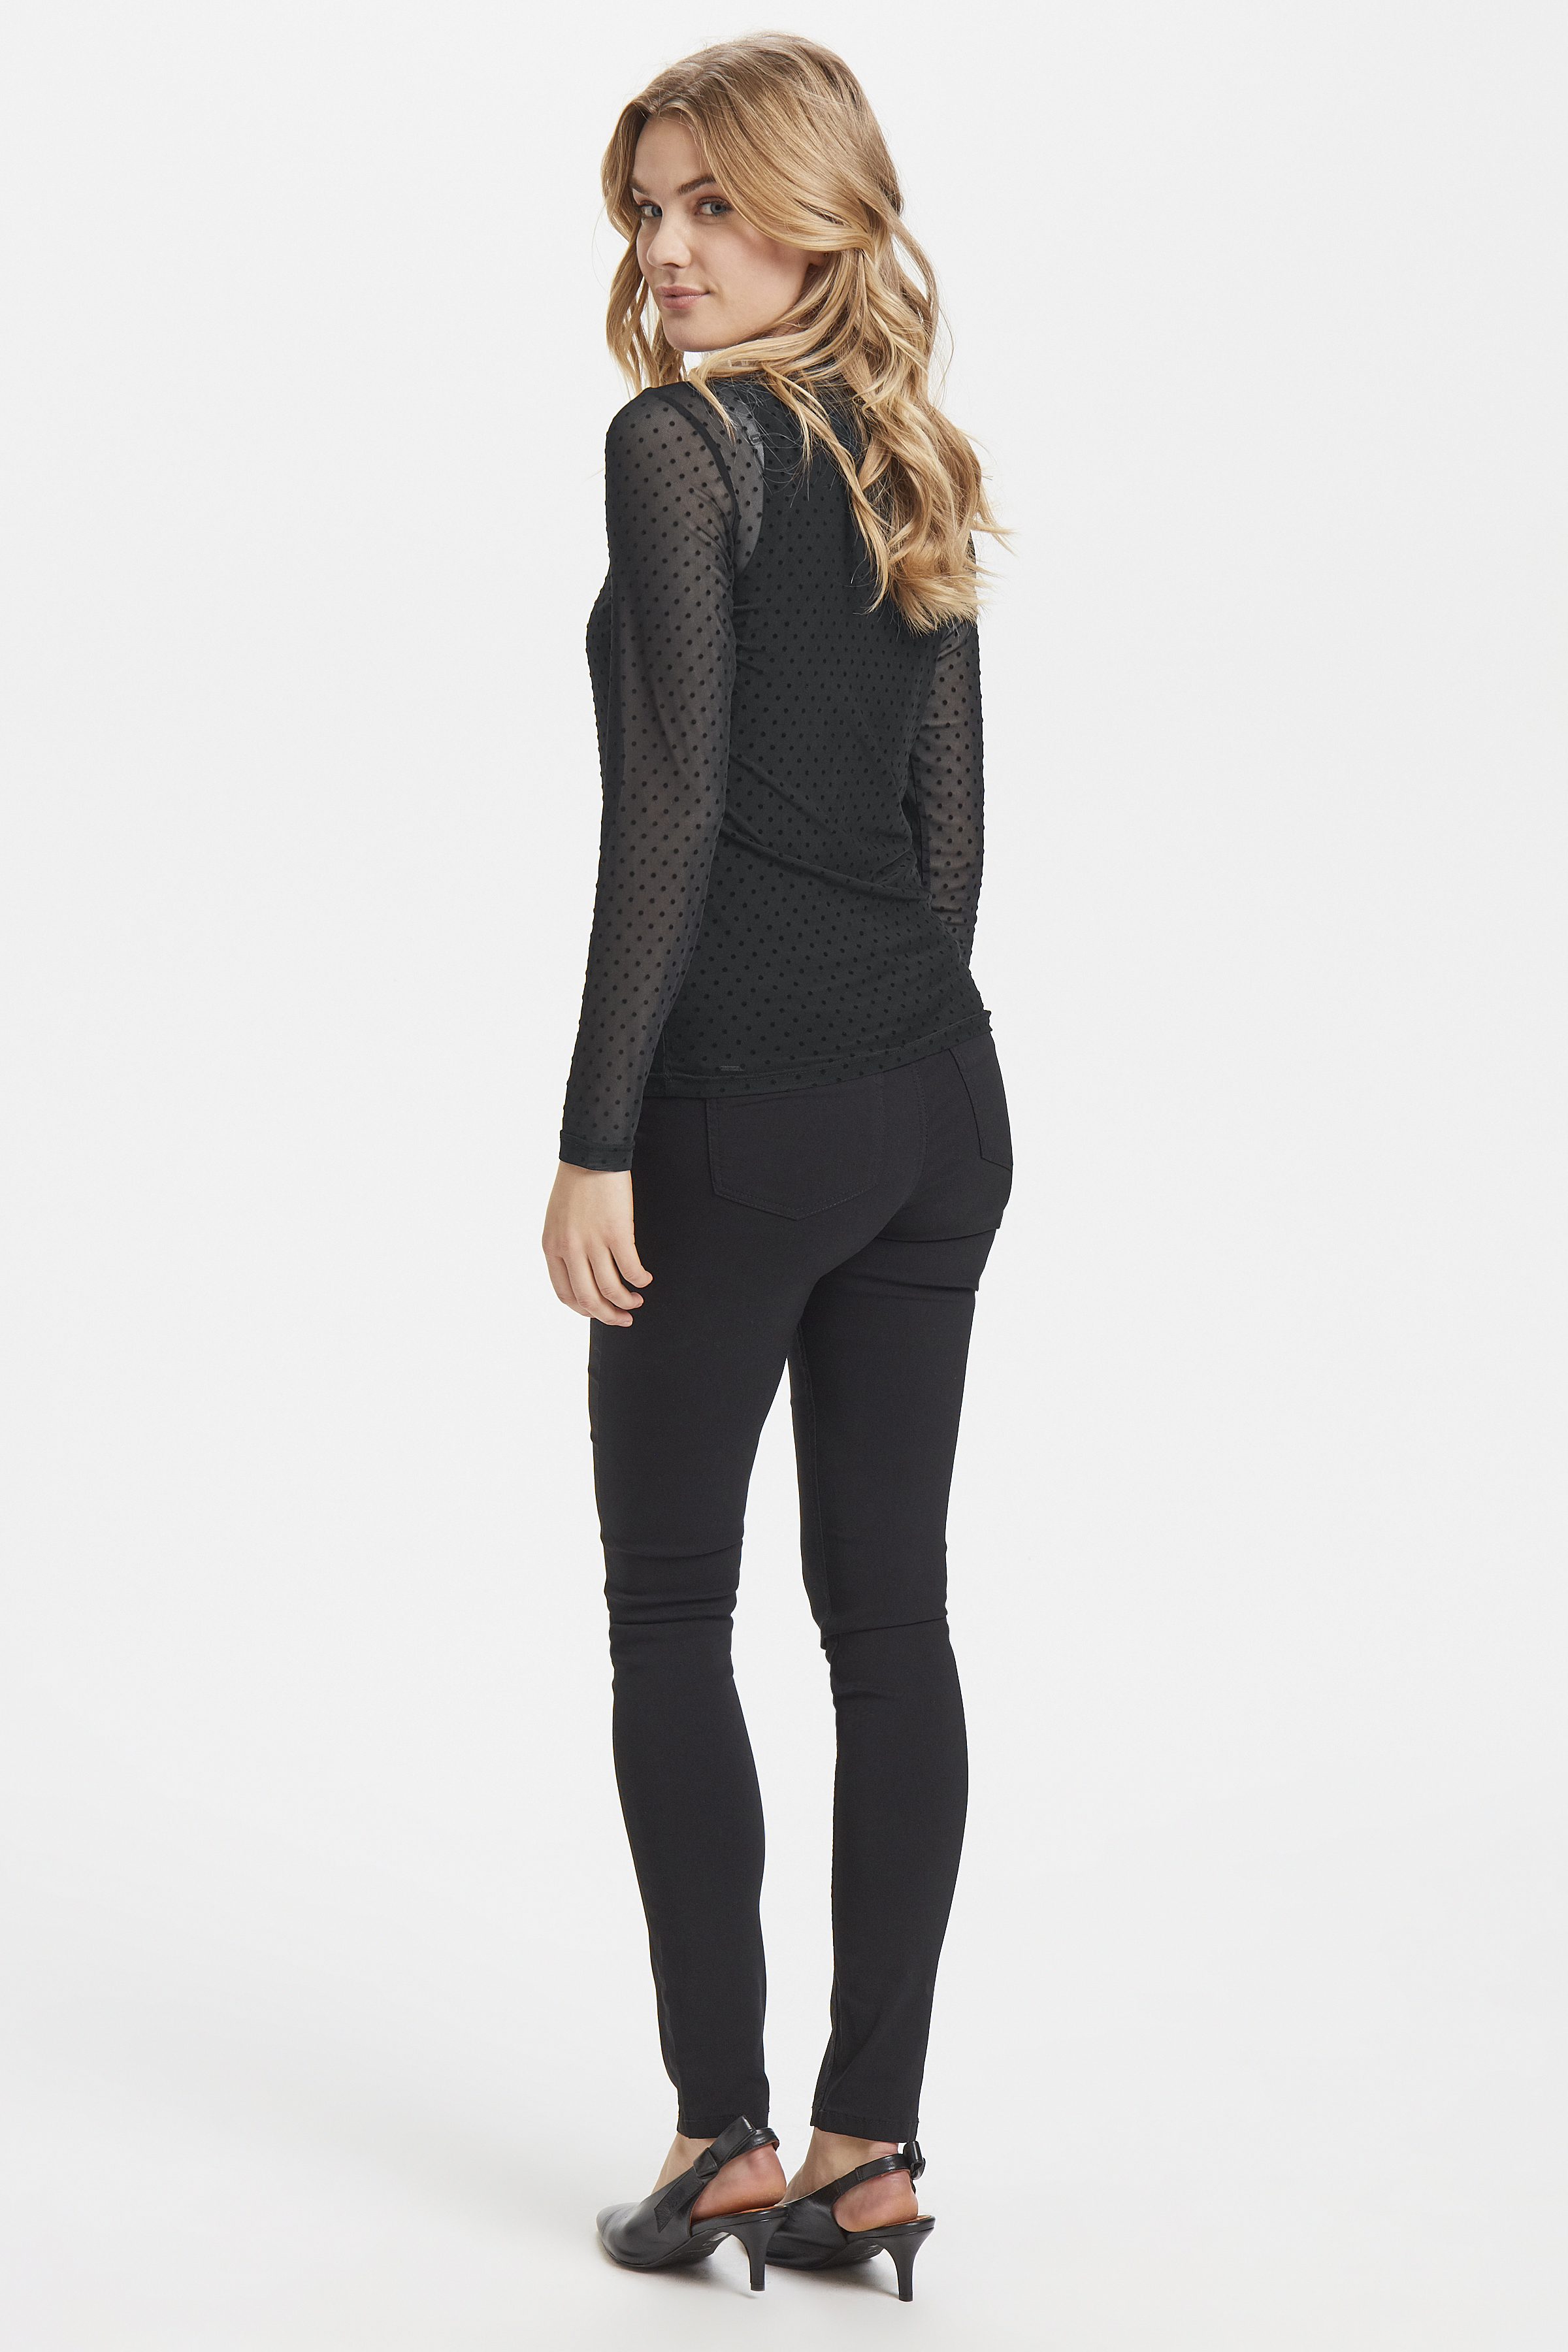 Black dot Combi 1 Langermet bluse fra b.young - Kjøp Black dot Combi 1 Langermet bluse fra størrelse XS-XL her